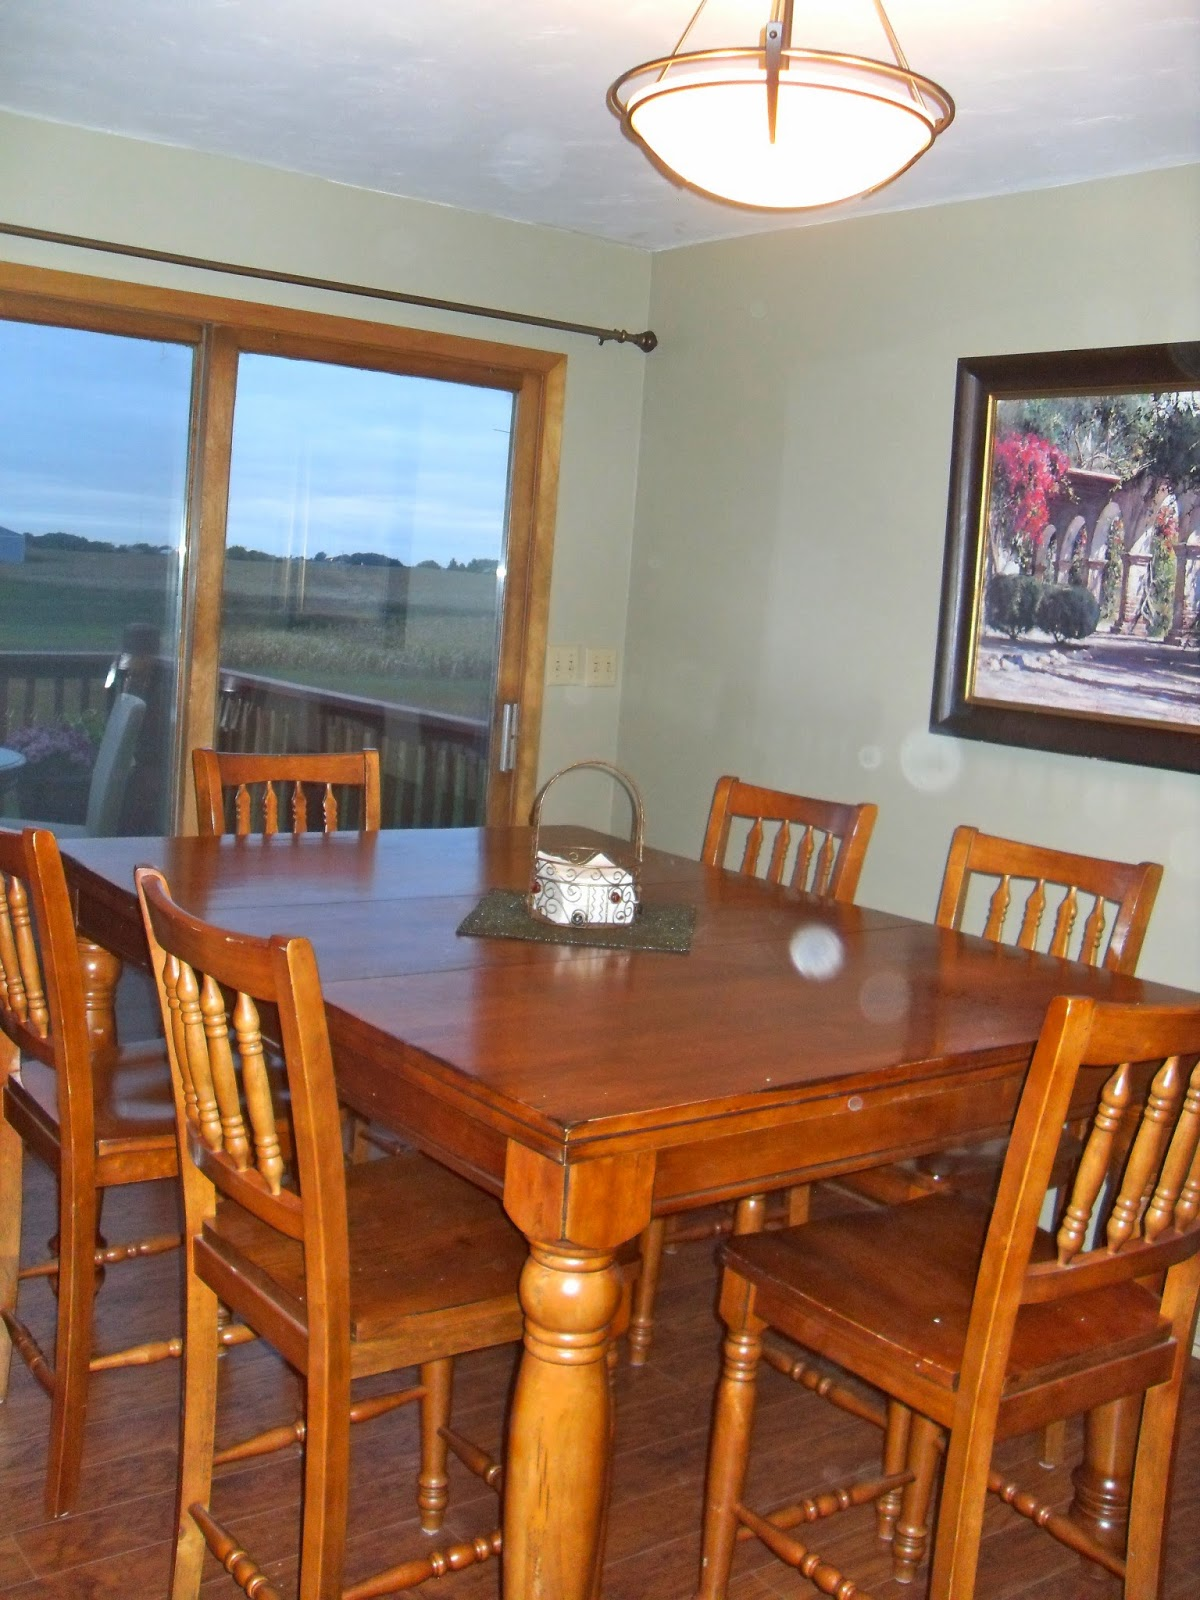 Craigslist Dining Room Table And Chairs Excellent Craigslist Denver